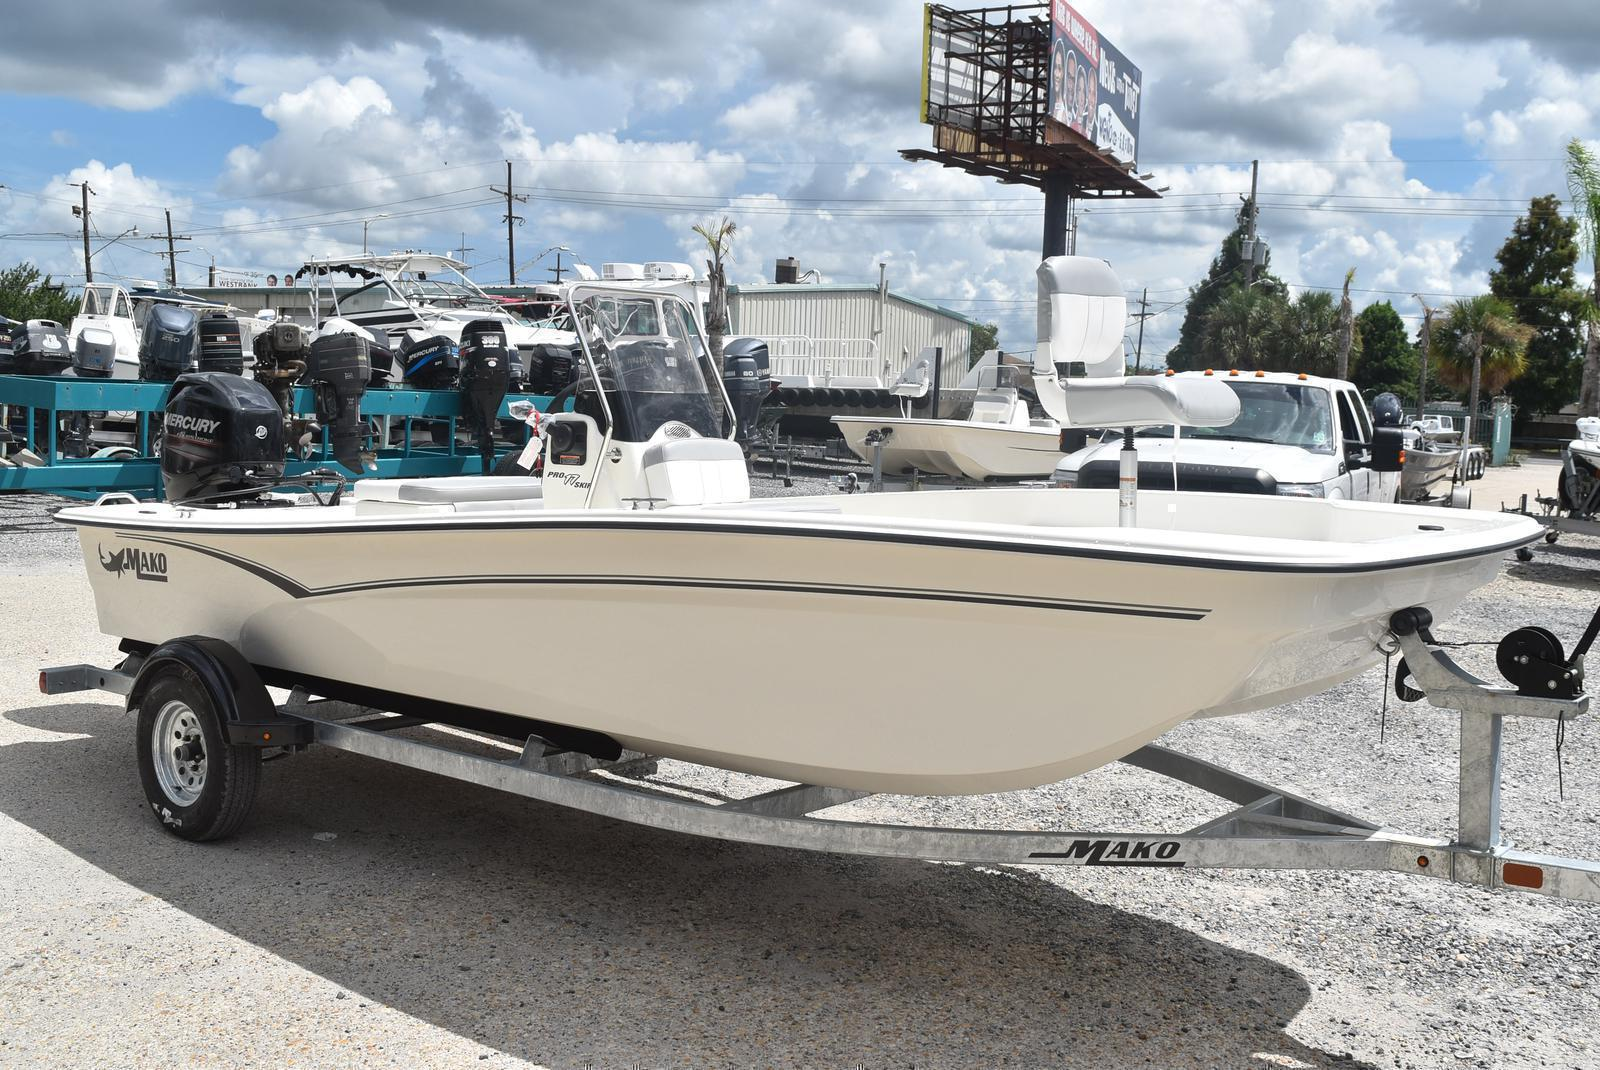 2020 Mako boat for sale, model of the boat is Pro Skiff 17, 75 ELPT & Image # 649 of 702